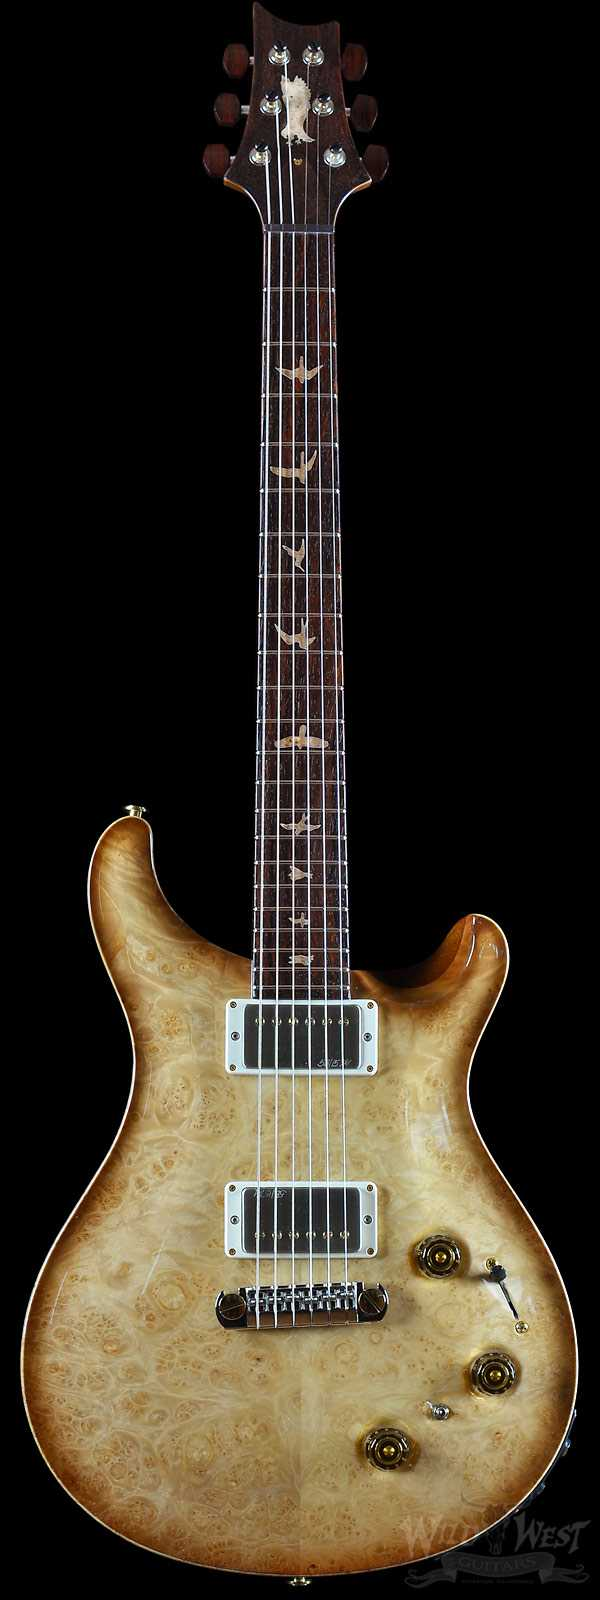 PRS Private Stock #6140 P22 Burl Maple Top with Smoked Burst